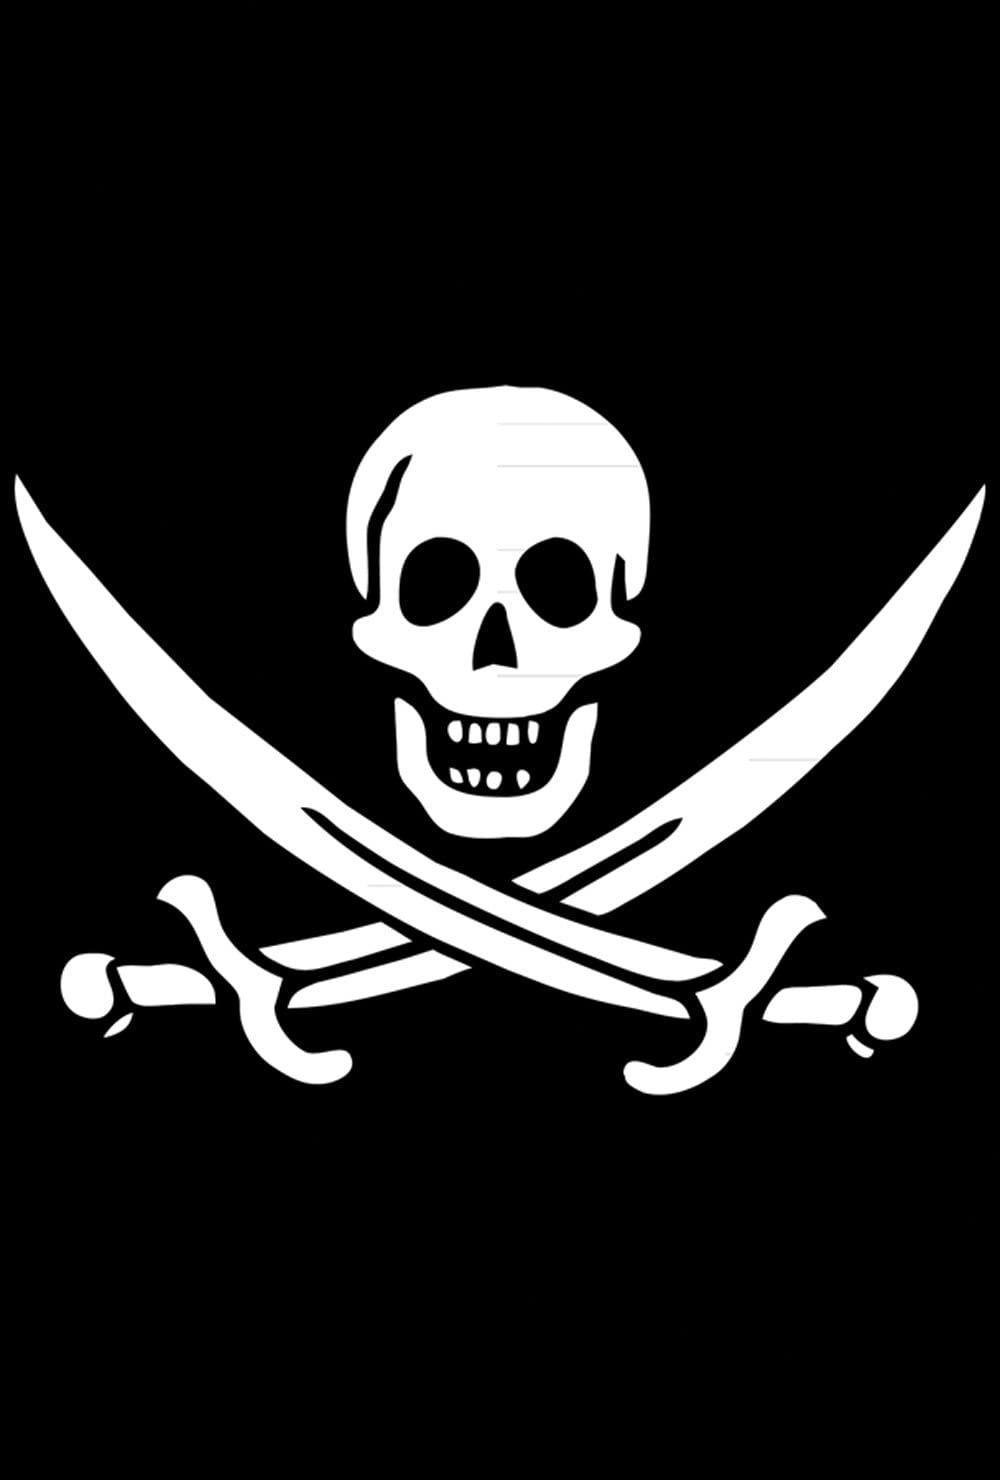 Toland Home Garden Calico Jack's Jolly Roger 12.5 x 18 Inch Decorative Pirate Skull Sword Garden Flag